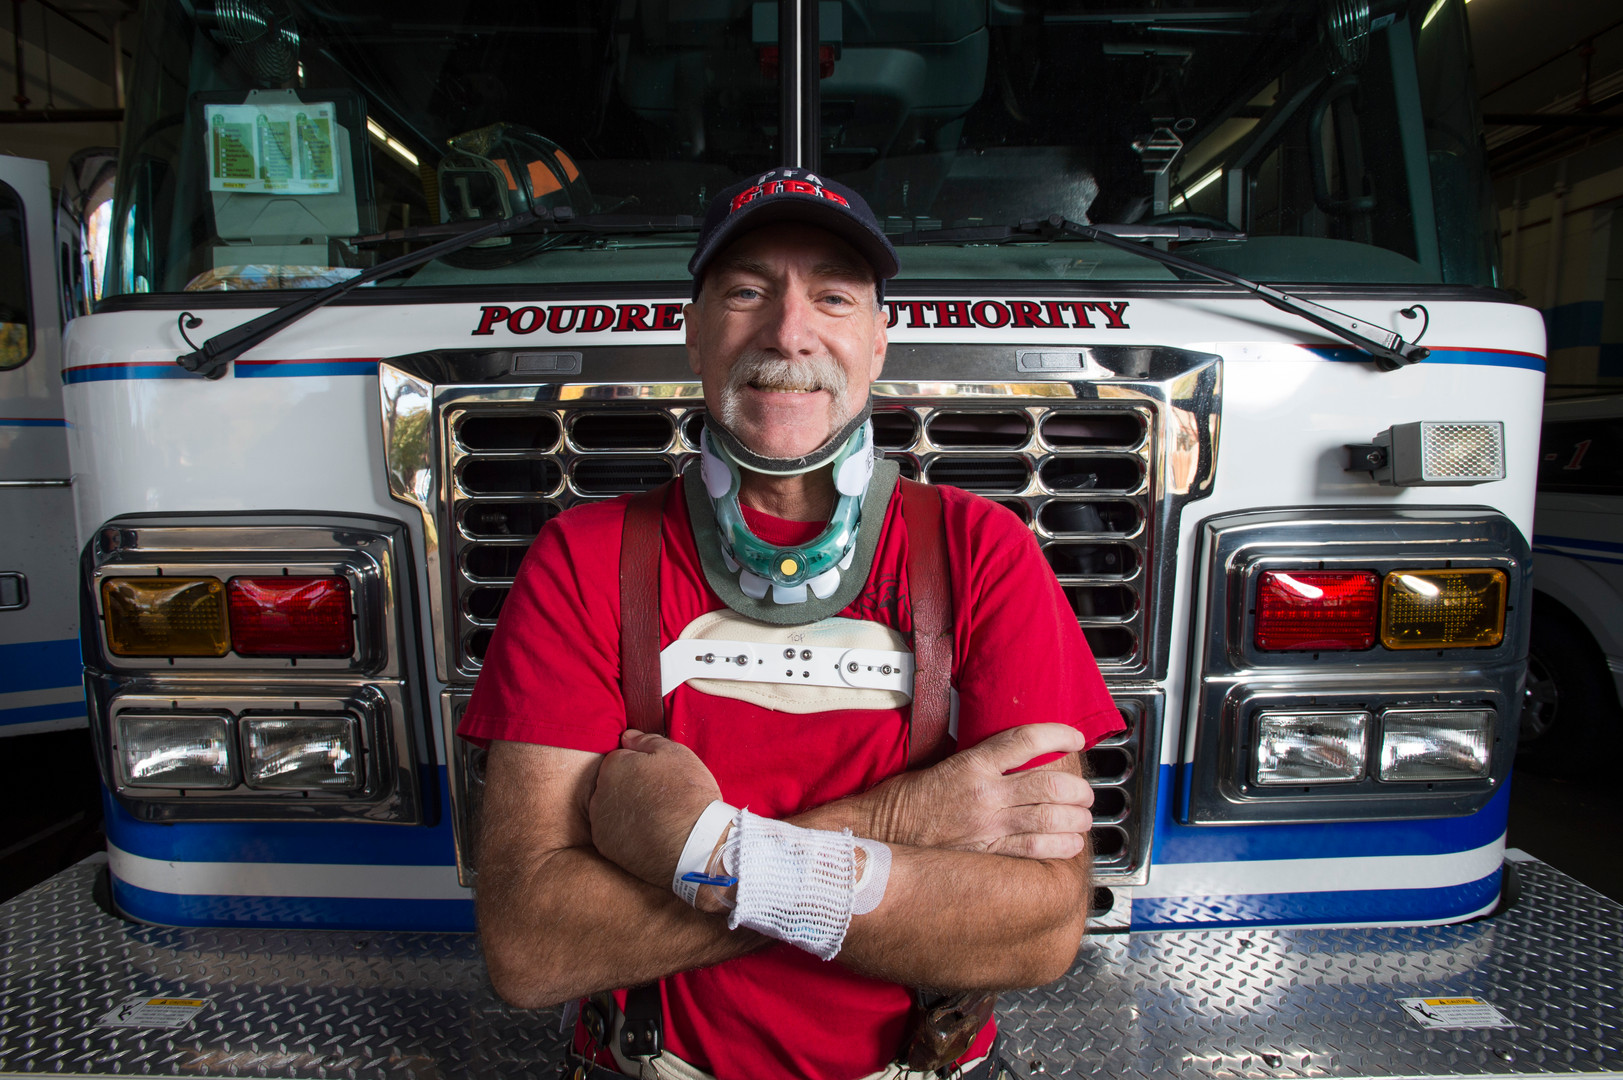 "Dean DeLaney shows off his mustache at Station 1 in Fort Collins. Delaney was involved in an ATV accident in late September, fracturing vertebrae and sustaining life-threatening injuries. Station 1 firefighters grew out their mustaches as a tribute to Dean, who has only shaved his a few times in the last 35 years, giving a new take to ""Movember."" Delaney has regained about 50% of the movement in his left arm along with some dexterity in his back but hospital bills are piling up. To support Dean, t-shirts and coins with #DeLaneyStrong are available to assist with bills. AUSTIN HUMPHREYS/THE COLORADOAN"